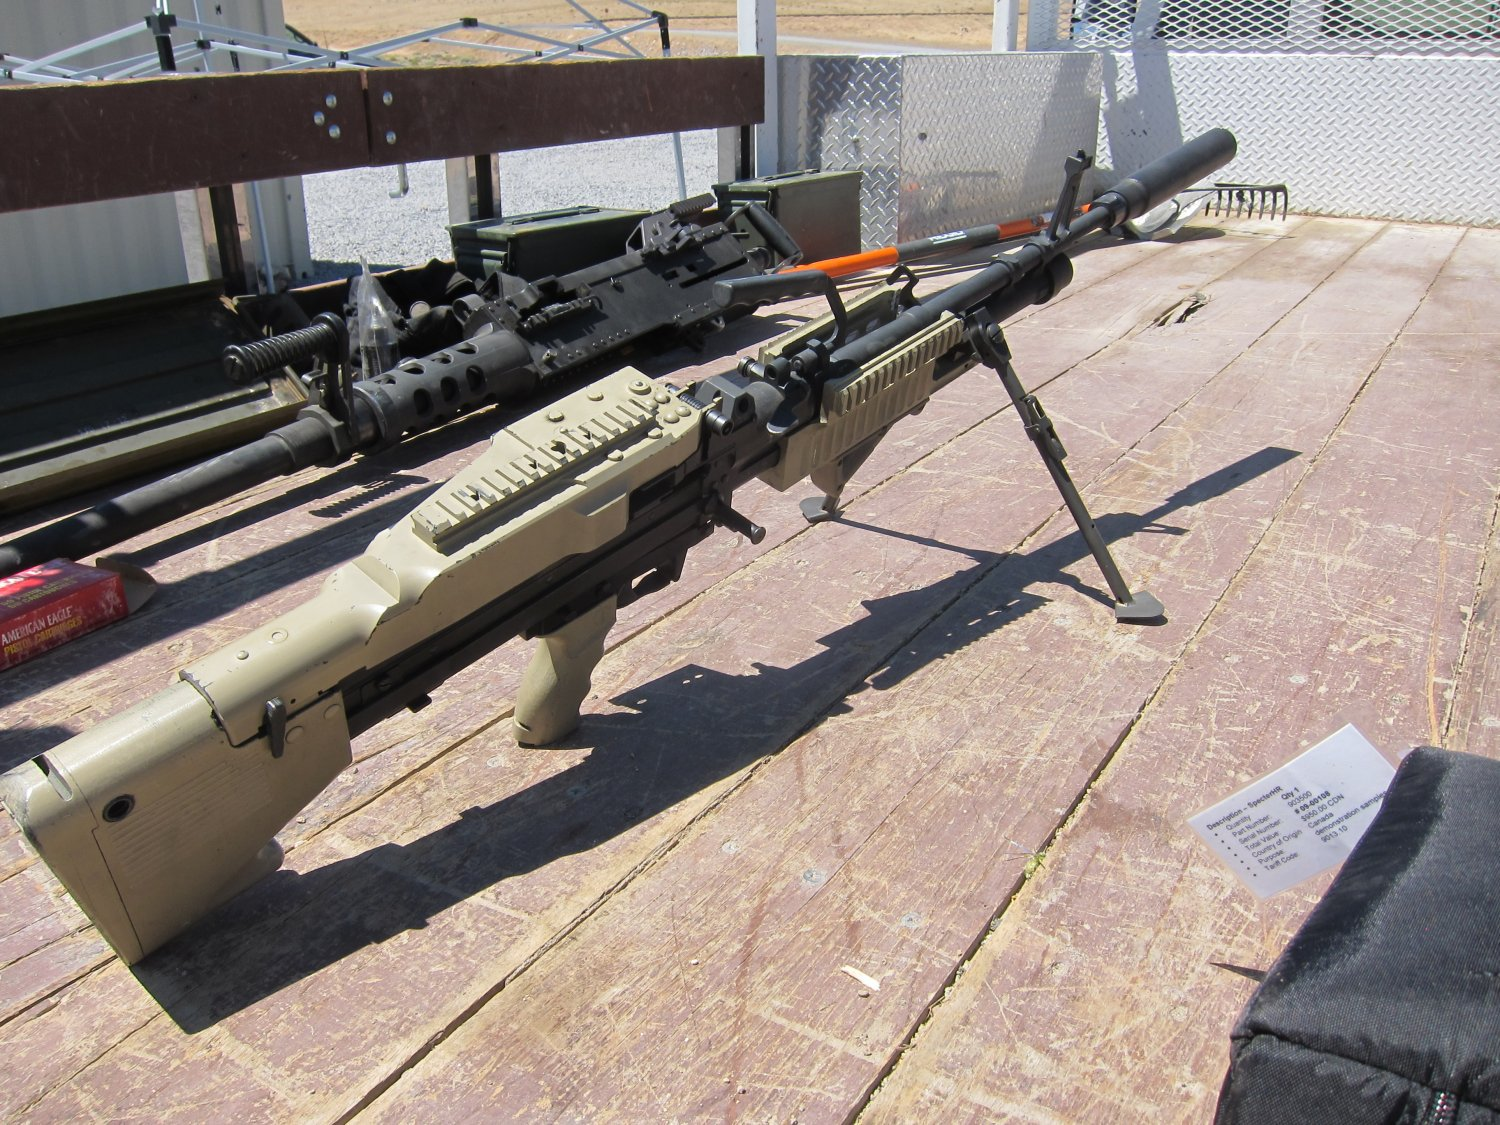 U.S. Ordnance Mk43 Mod 1 M60E4 Medium Machine Gun 7.62mm MMG Future Version 6 <!  :en  >U.S. Ordnance Mk43 Mod 1/M60E4 Commando 7.62mm NATO Medium Machine Gun (MMG) for Special Operations Forces (U.S. Navy SEALs): Latest Version Weapon Gets Test Fired at the Range (Video!) <!  :  >